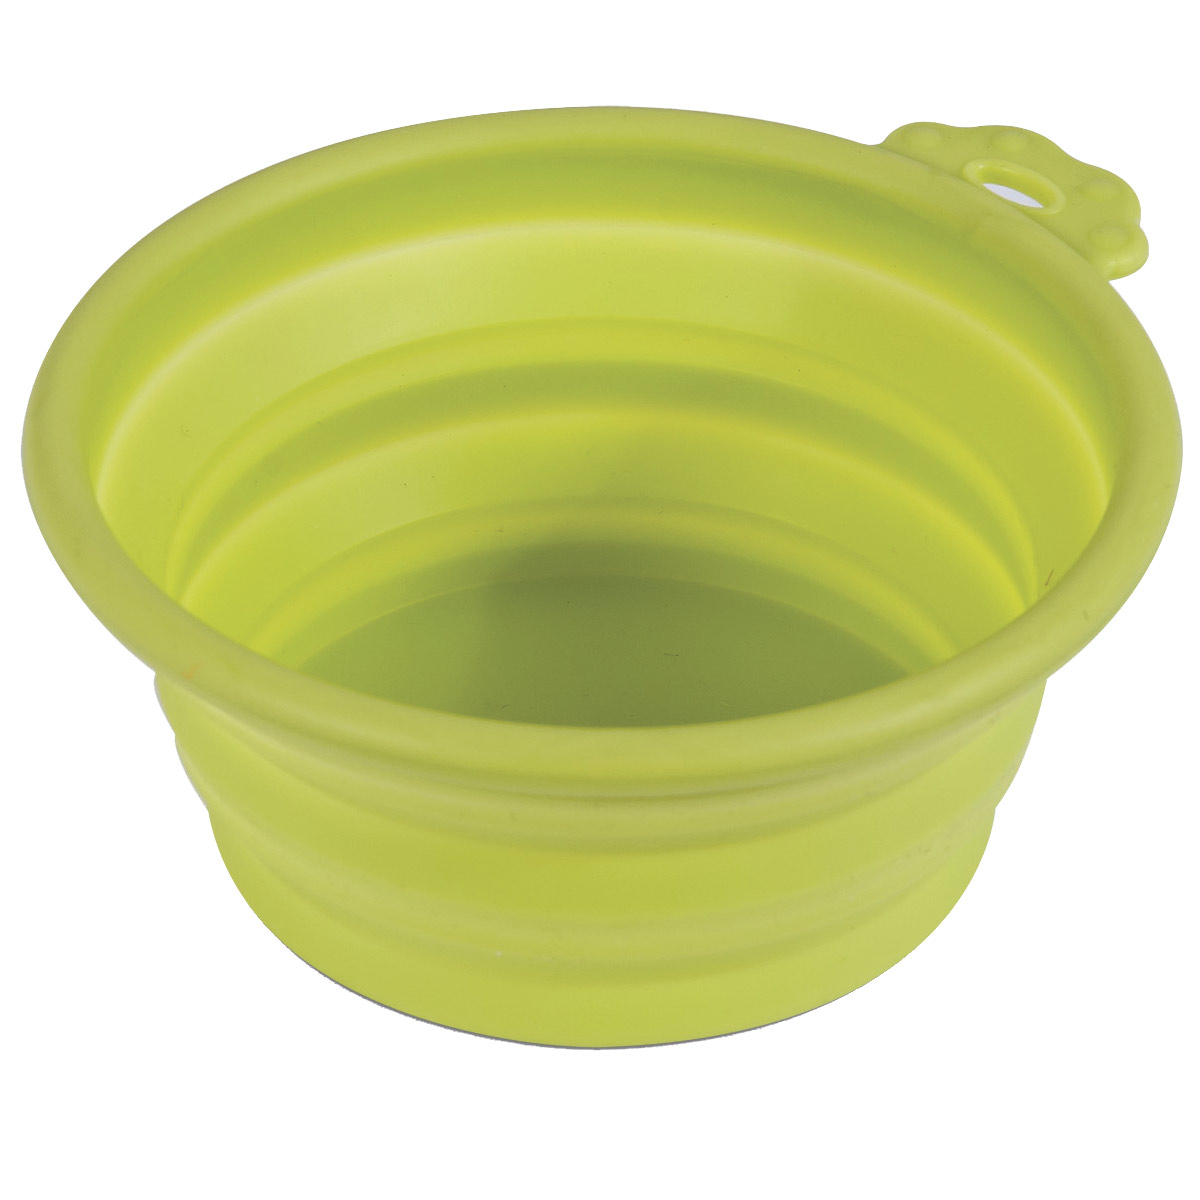 Lime Green Petmate 1.5 Cup Collapsible Silicone Travel Bowl